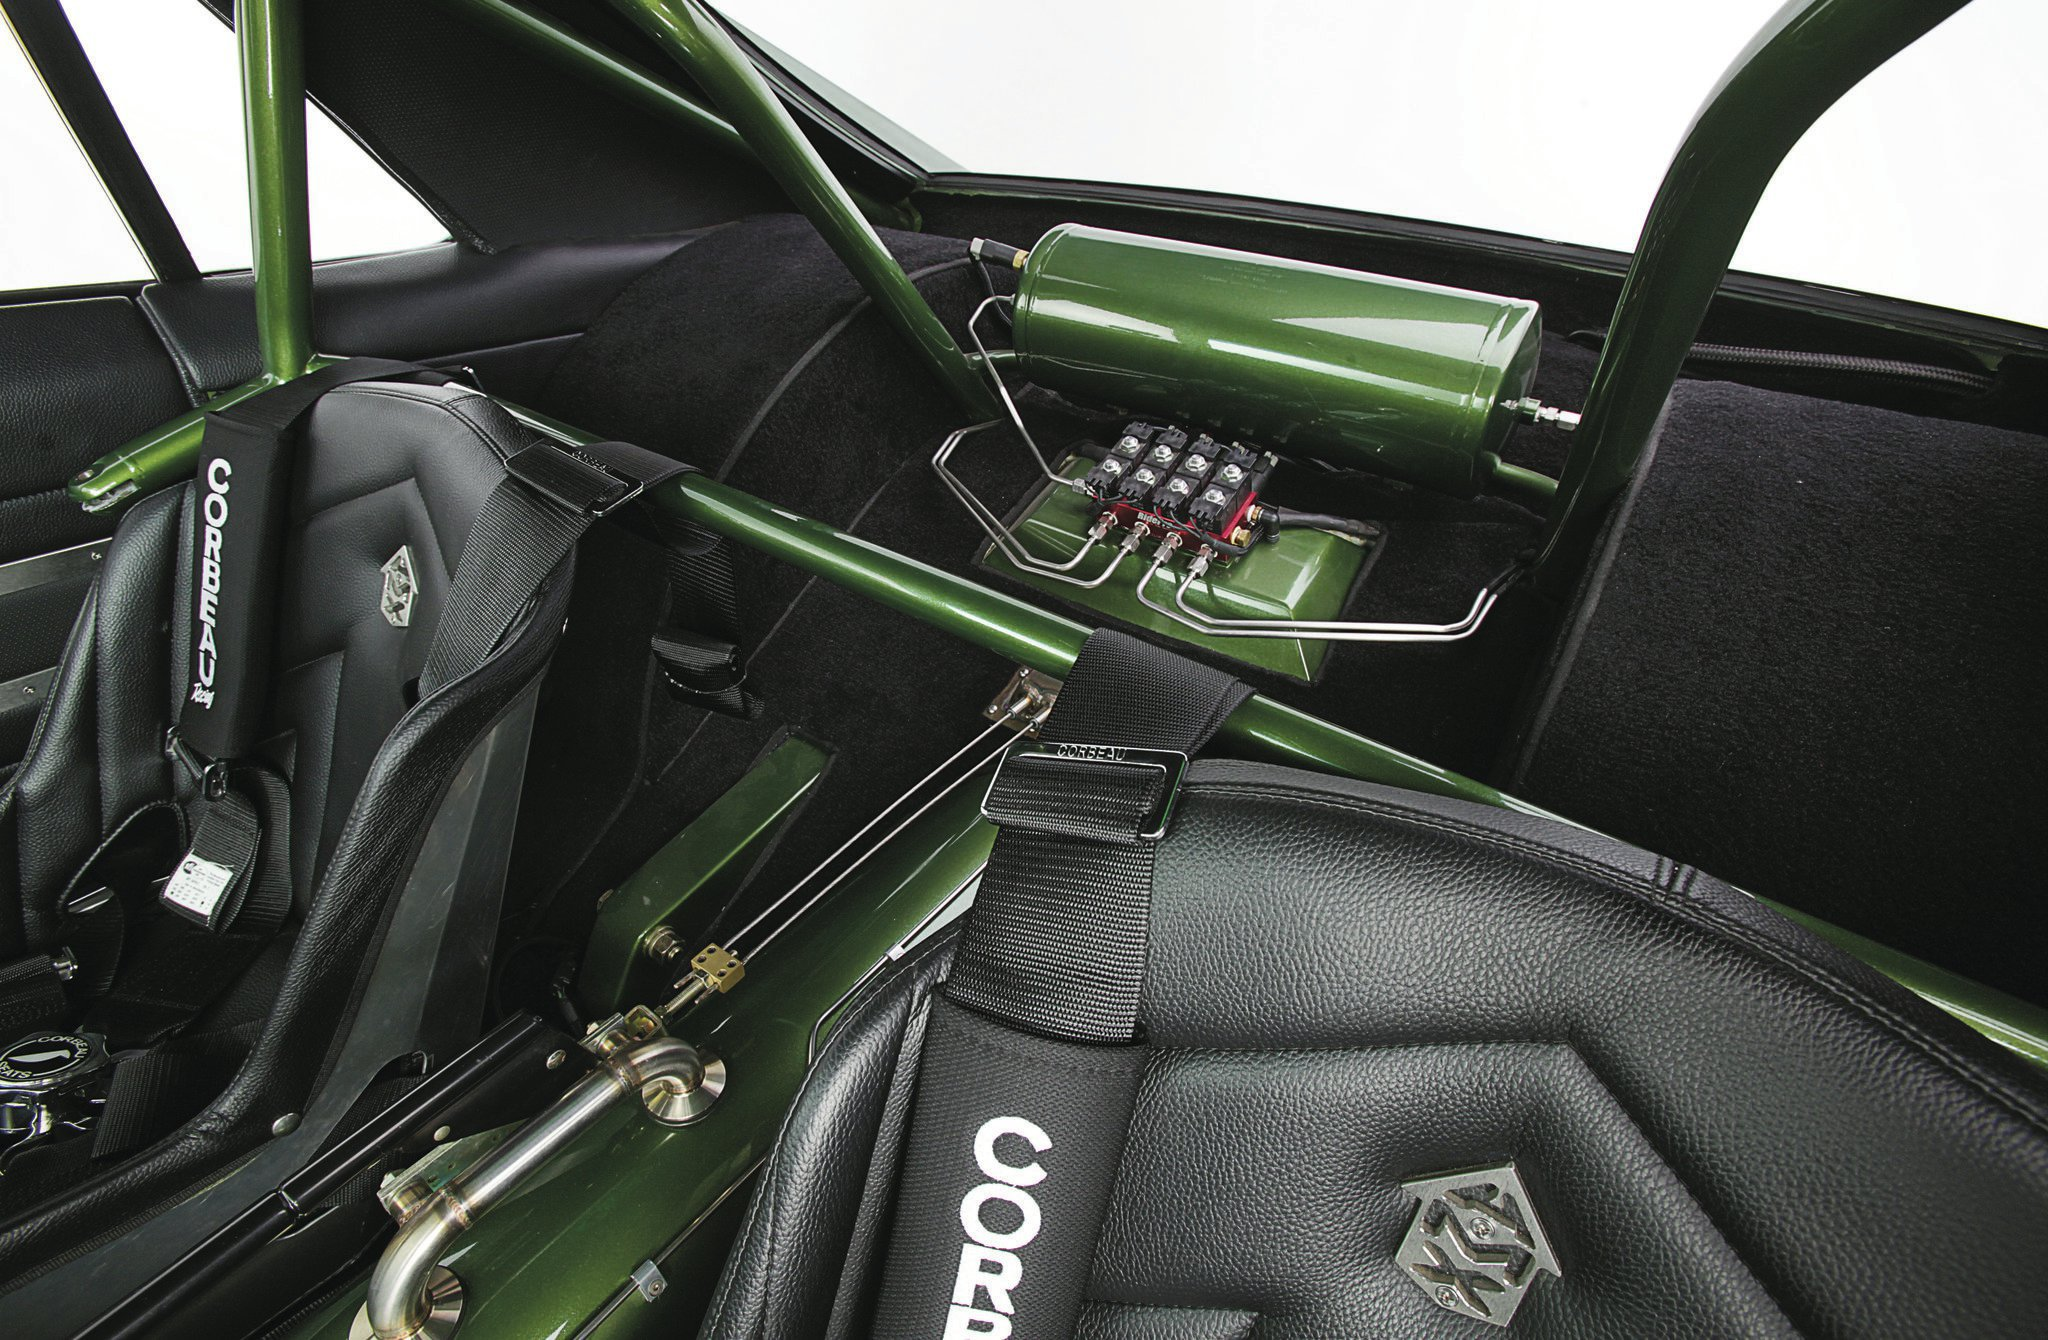 The integrated rollcage by RH Racecars in Kelowna, B.C., tucks nicely into the car. The air suspension tank and valves sit proudly under the rear window for all to get a look at.